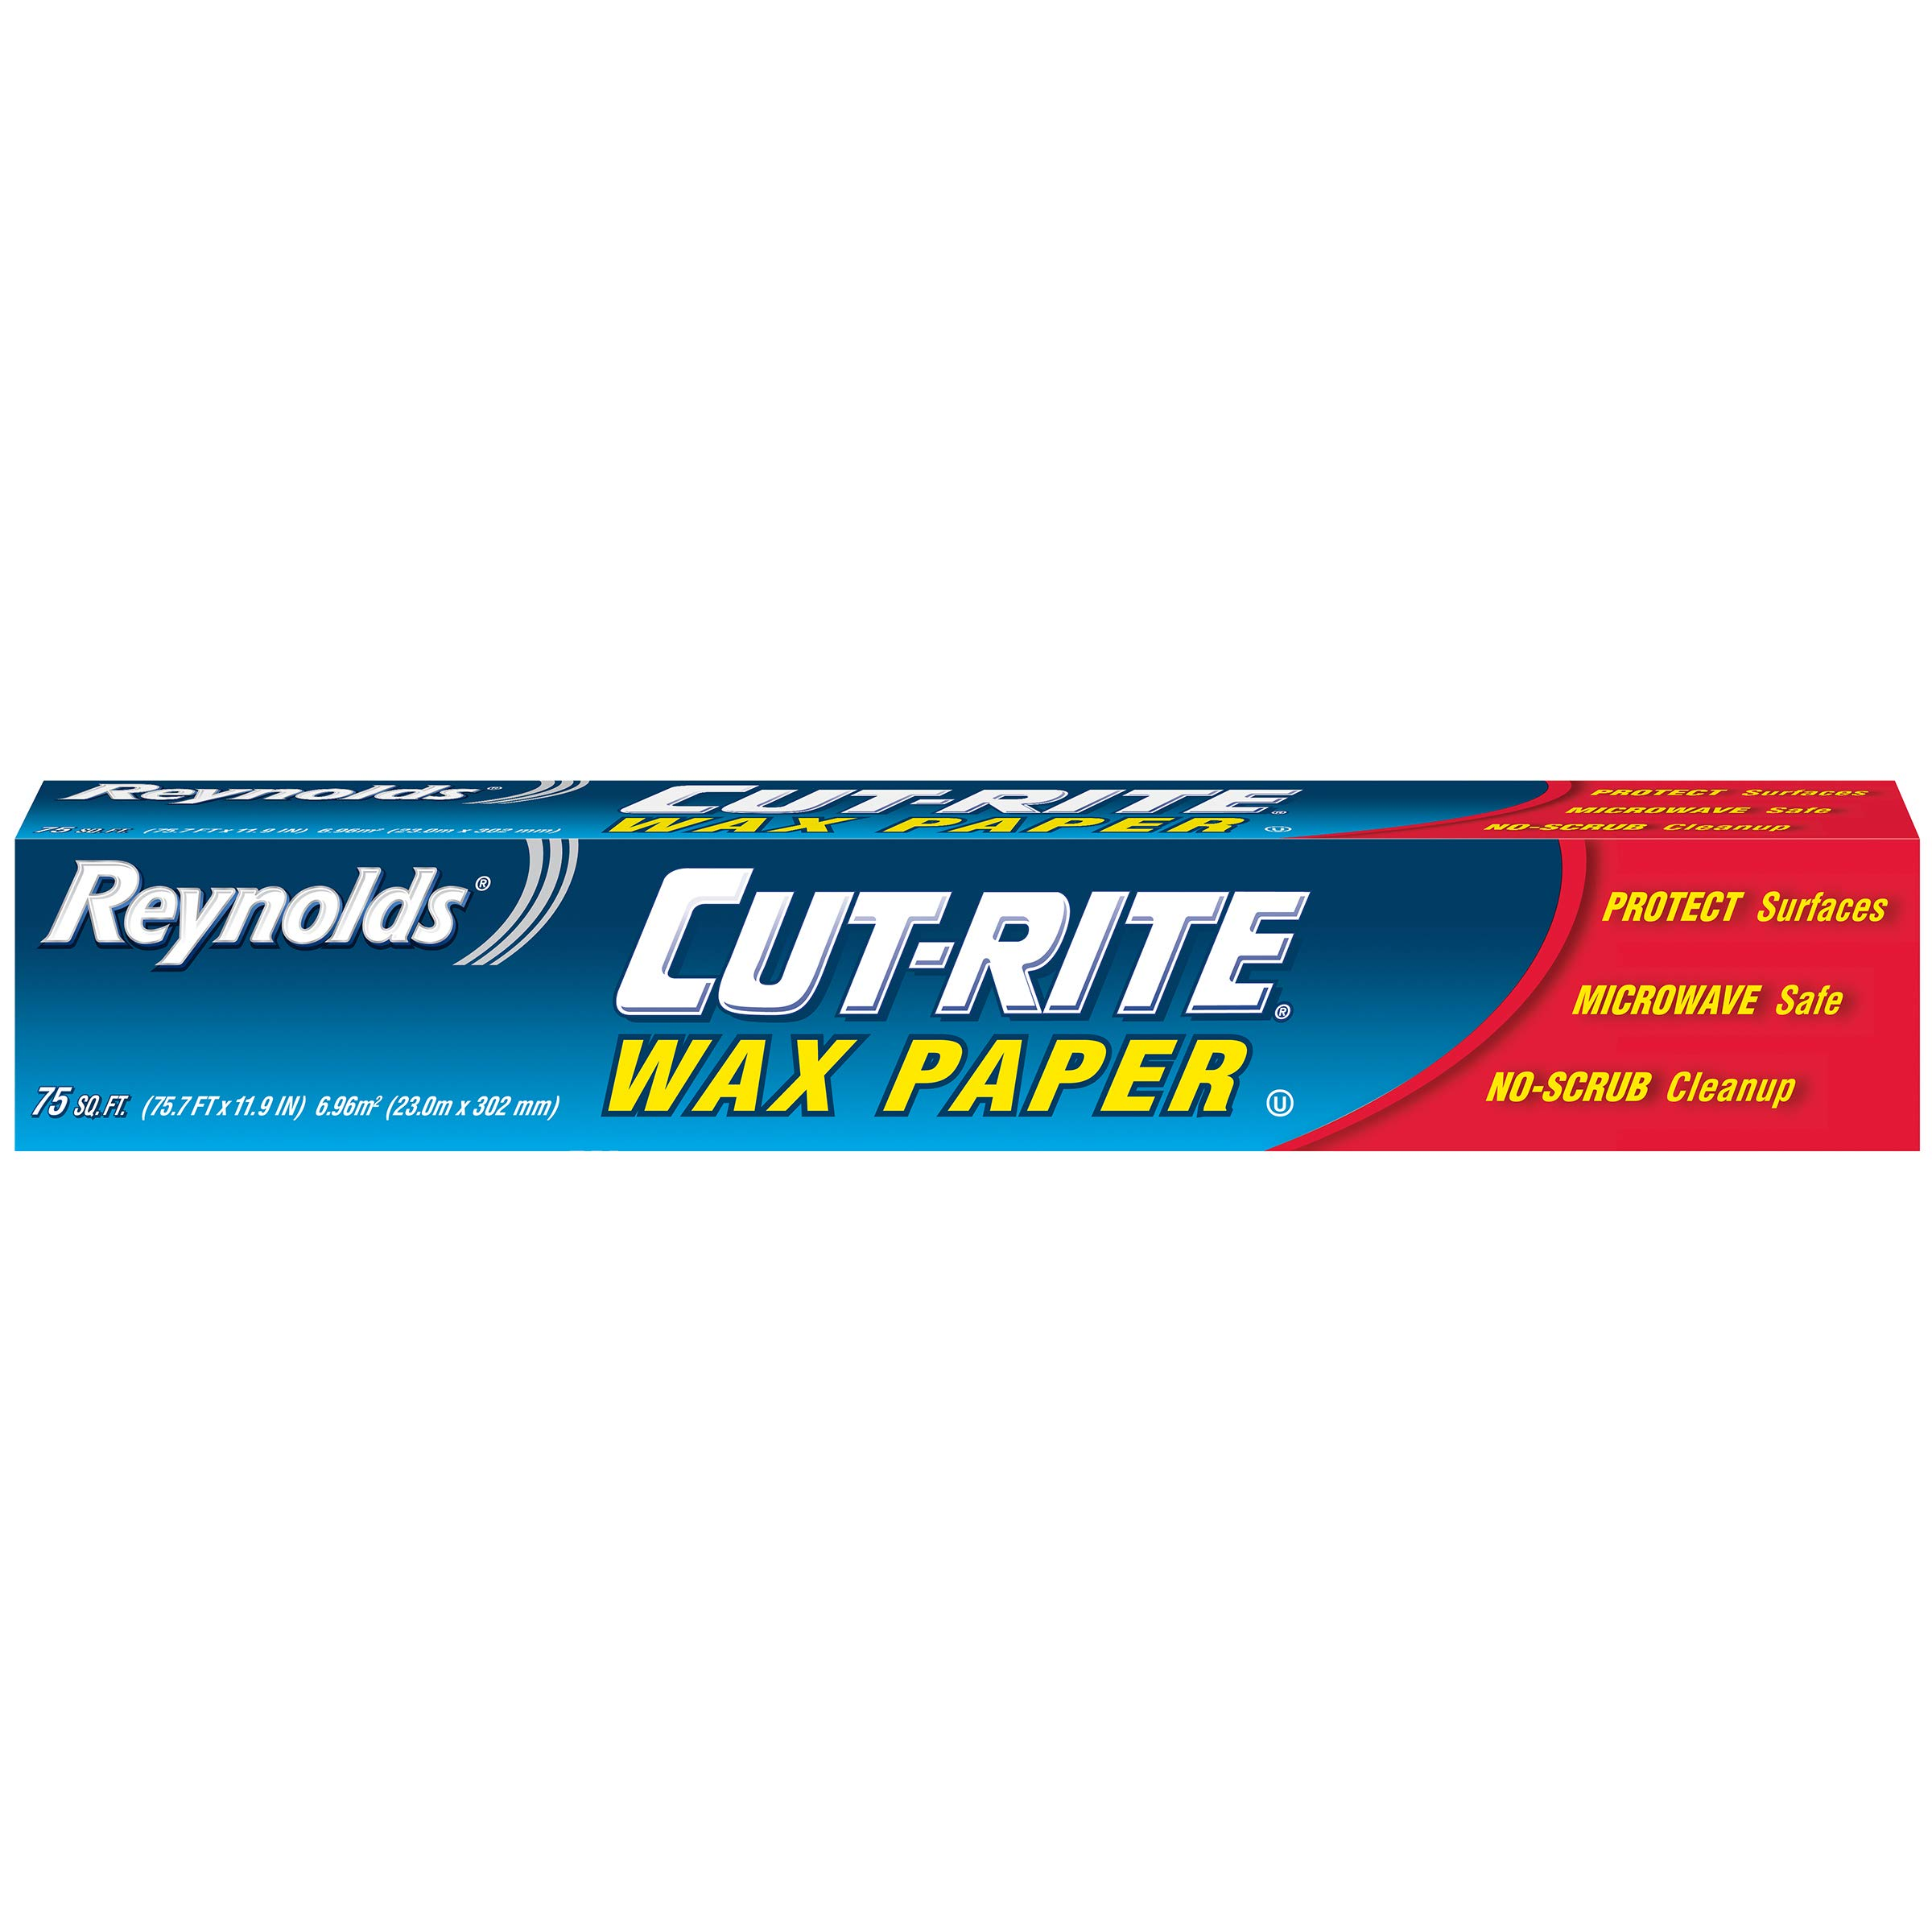 Reynolds Cut Rite Wax Paper 75 Square Feet Amazon Com Grocery Gourmet Food